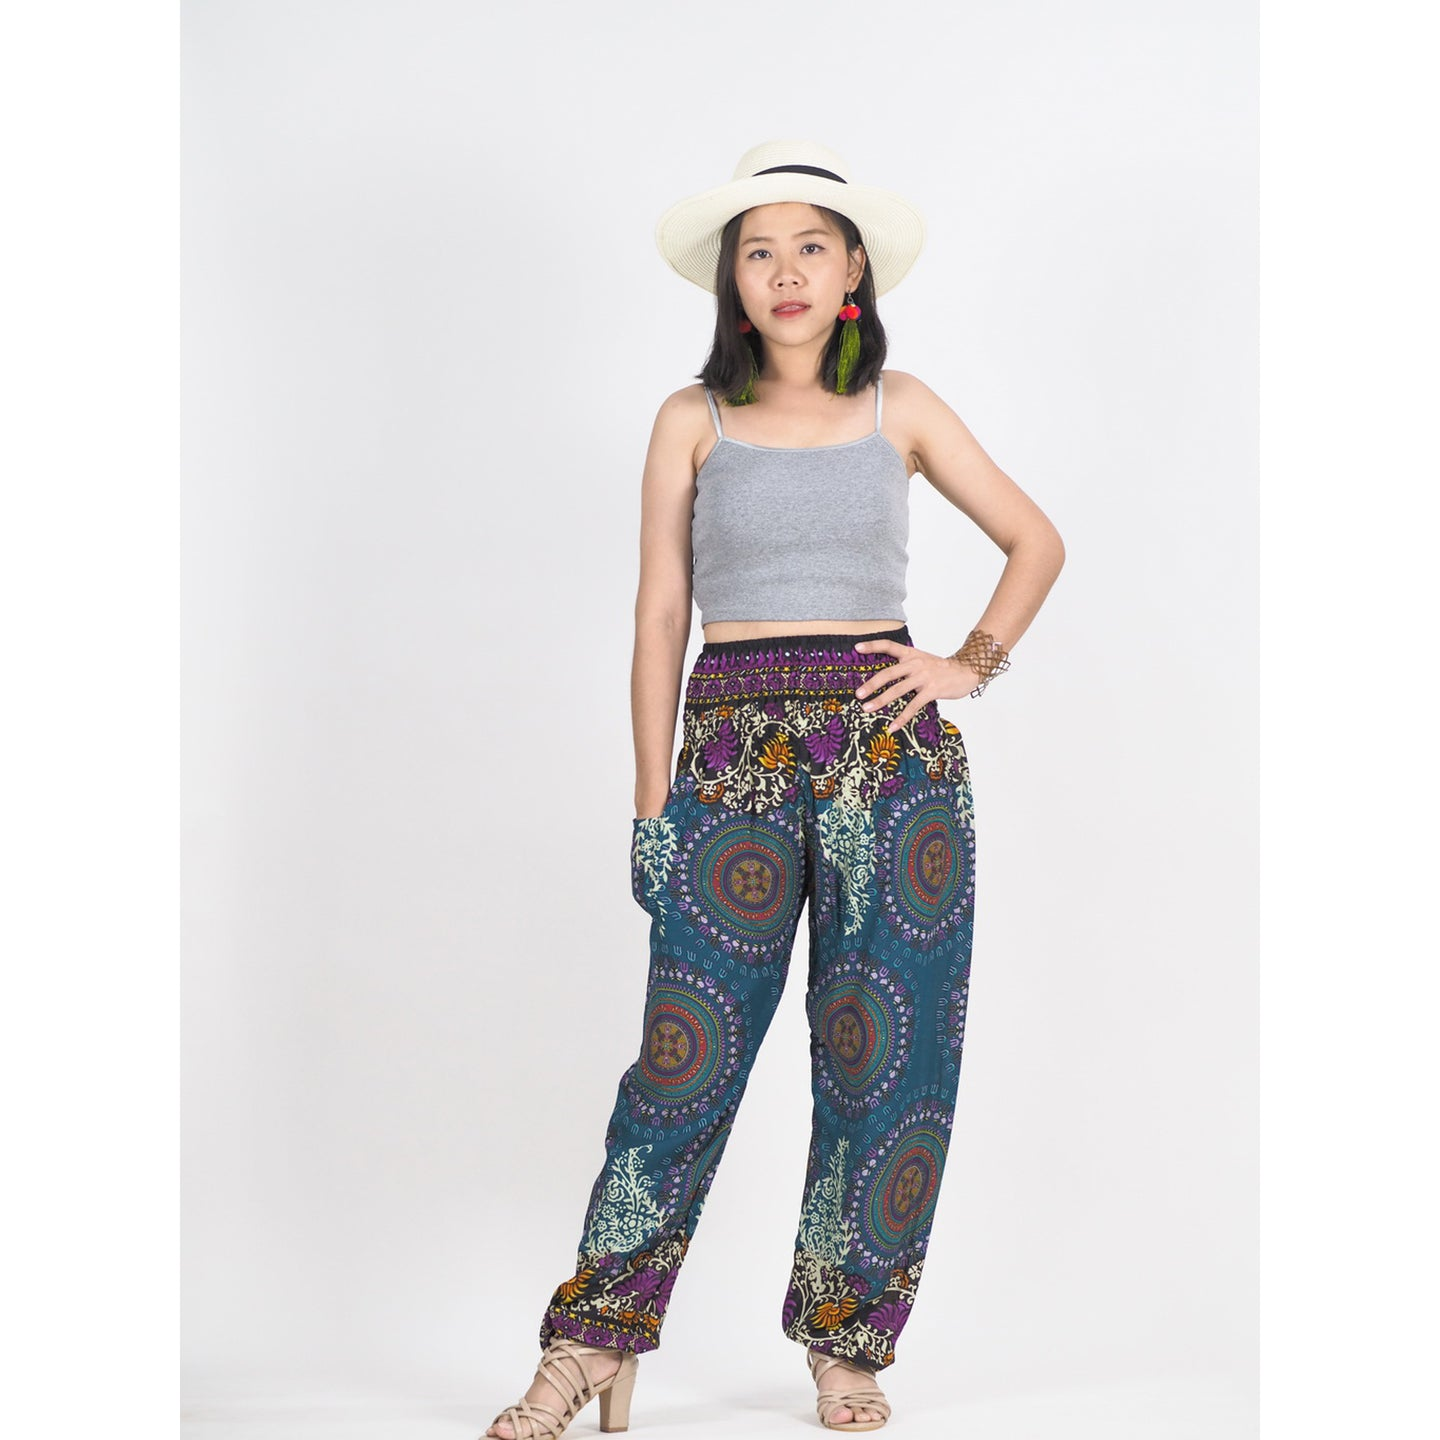 Mandala 151 women harem pants in Green PP0004 020151 02